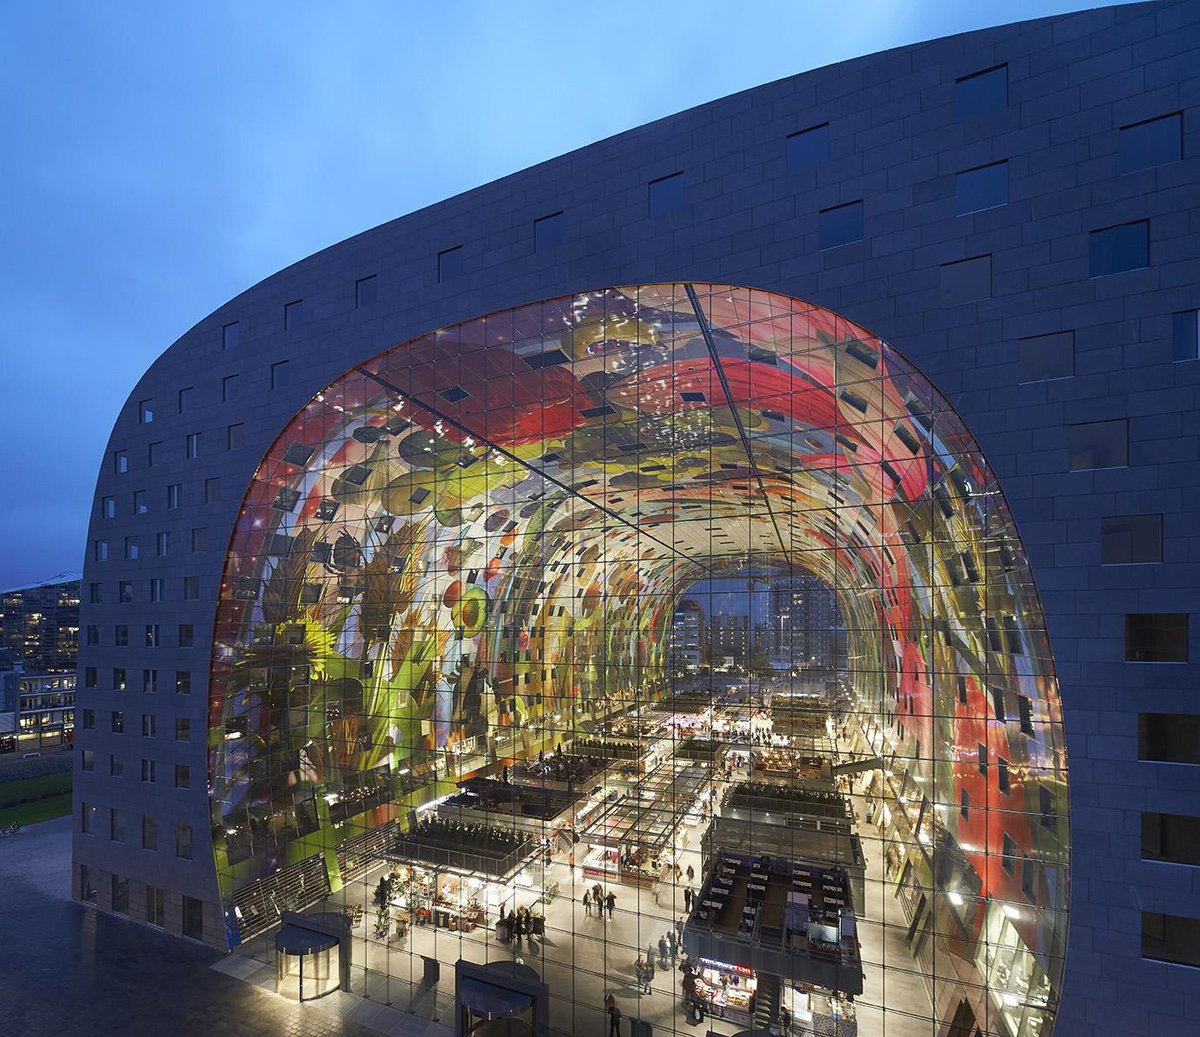 Markthal wins World Architecture News Mixed-Use Award 2014 for an 'original and effective' mix of different functions http://t.co/JCAZCm4DCL